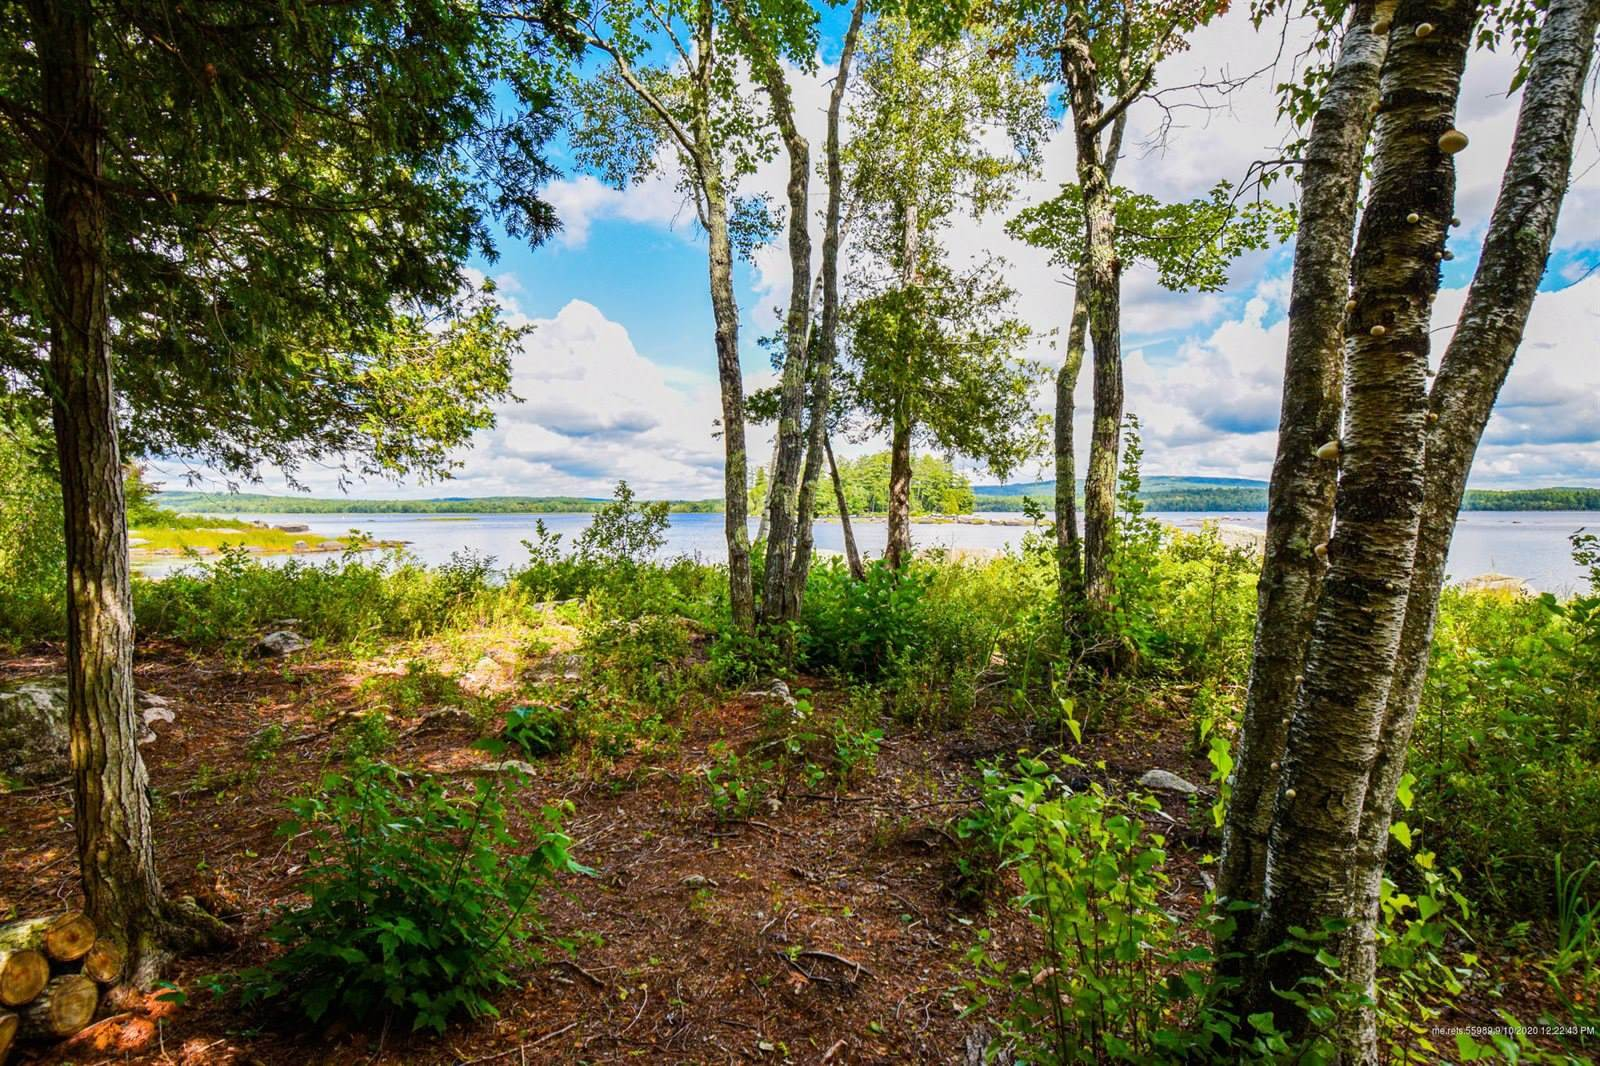 000 Old Ferry Road, Hartland, ME 04943